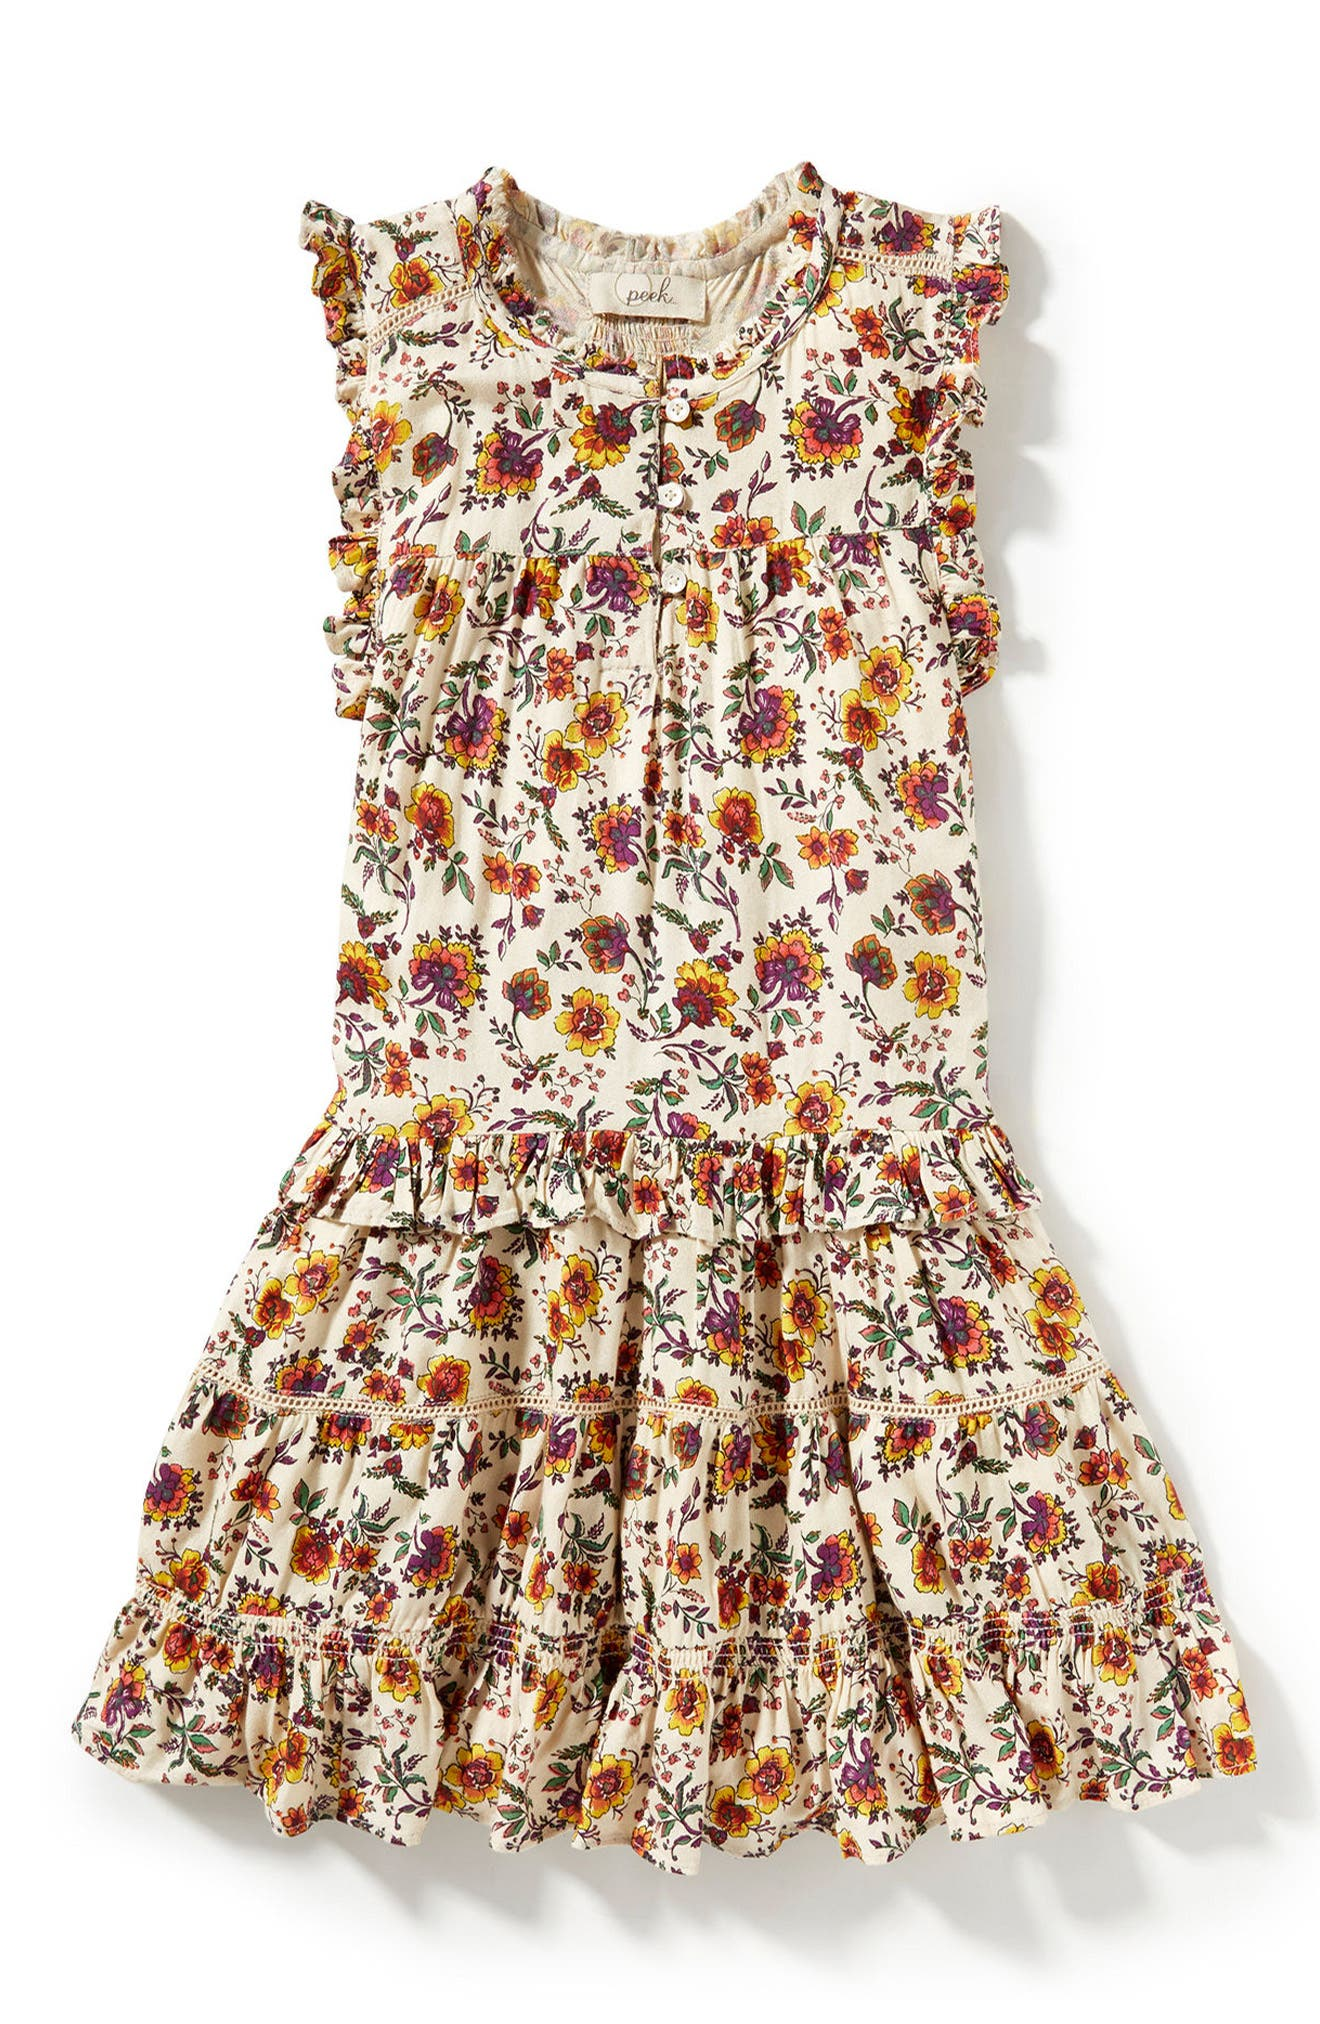 Natalie Print Dress,                         Main,                         color, Cream